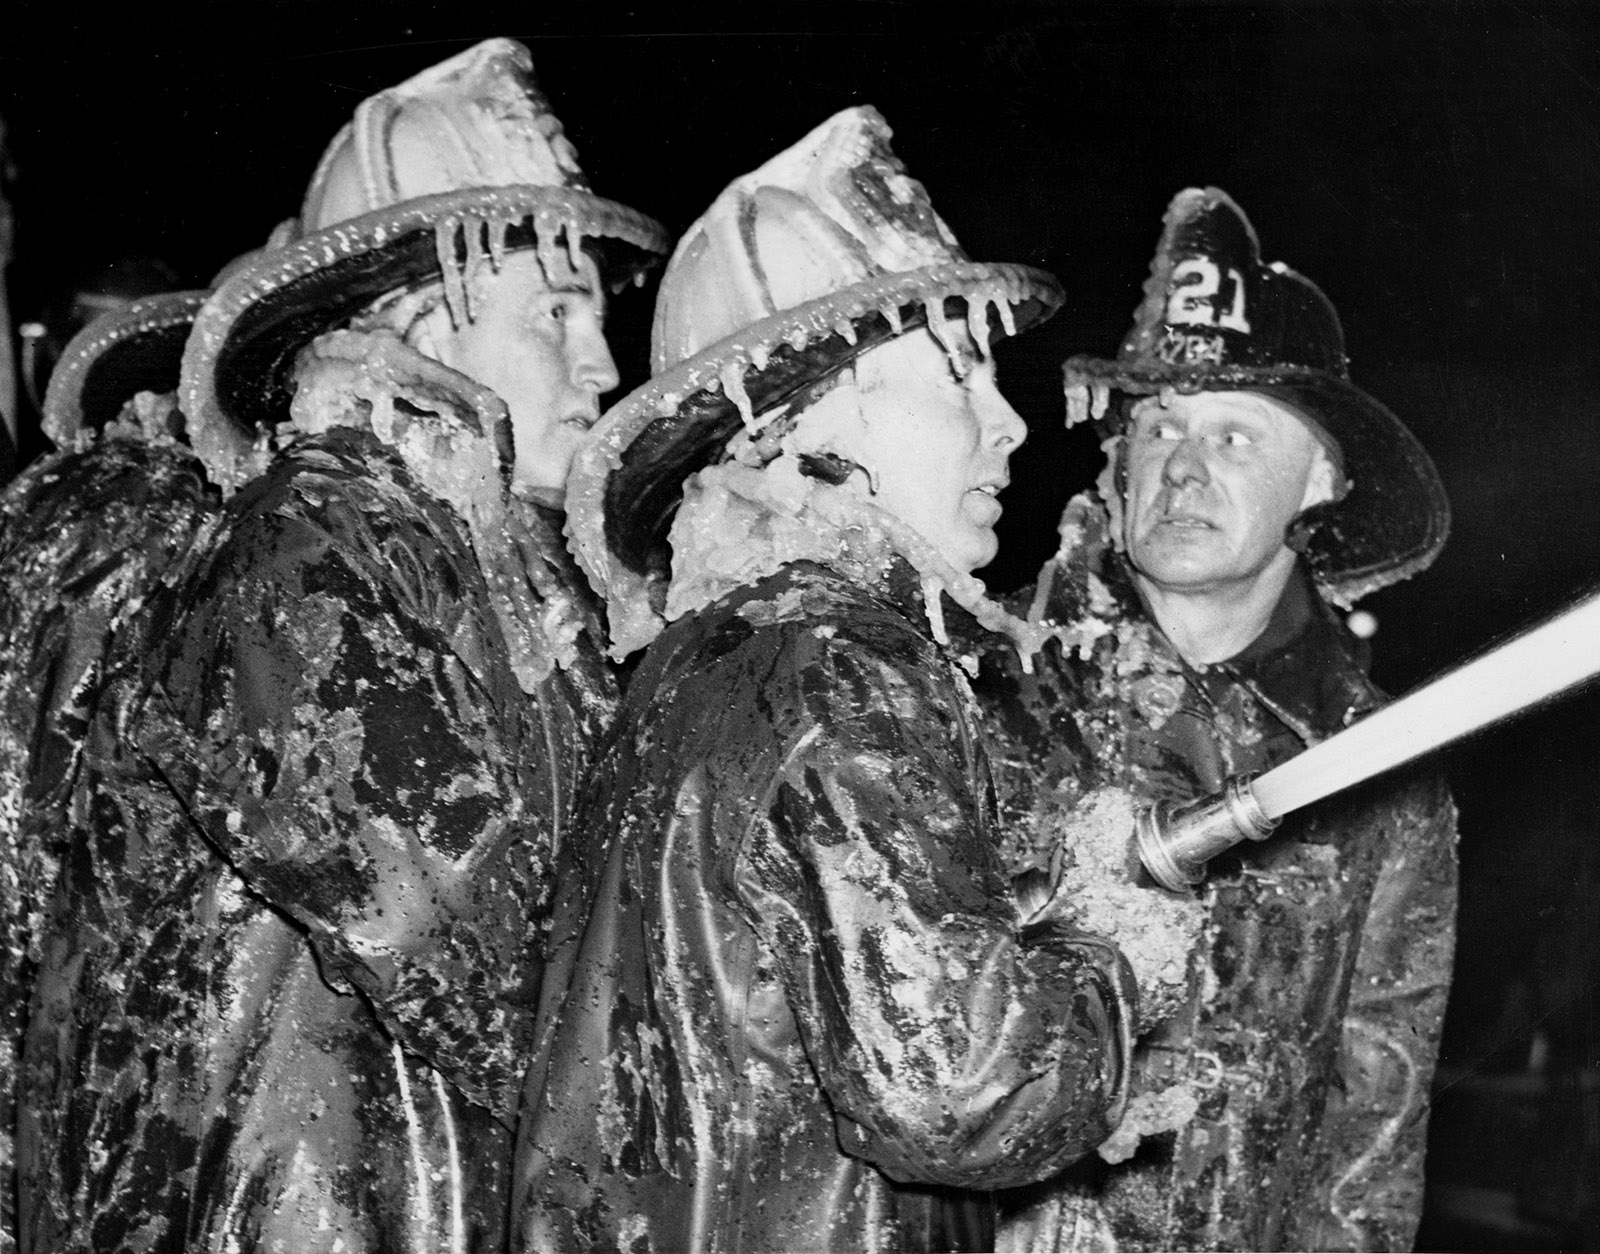 Firemen at Coney Island, New Year's Eve, 1940